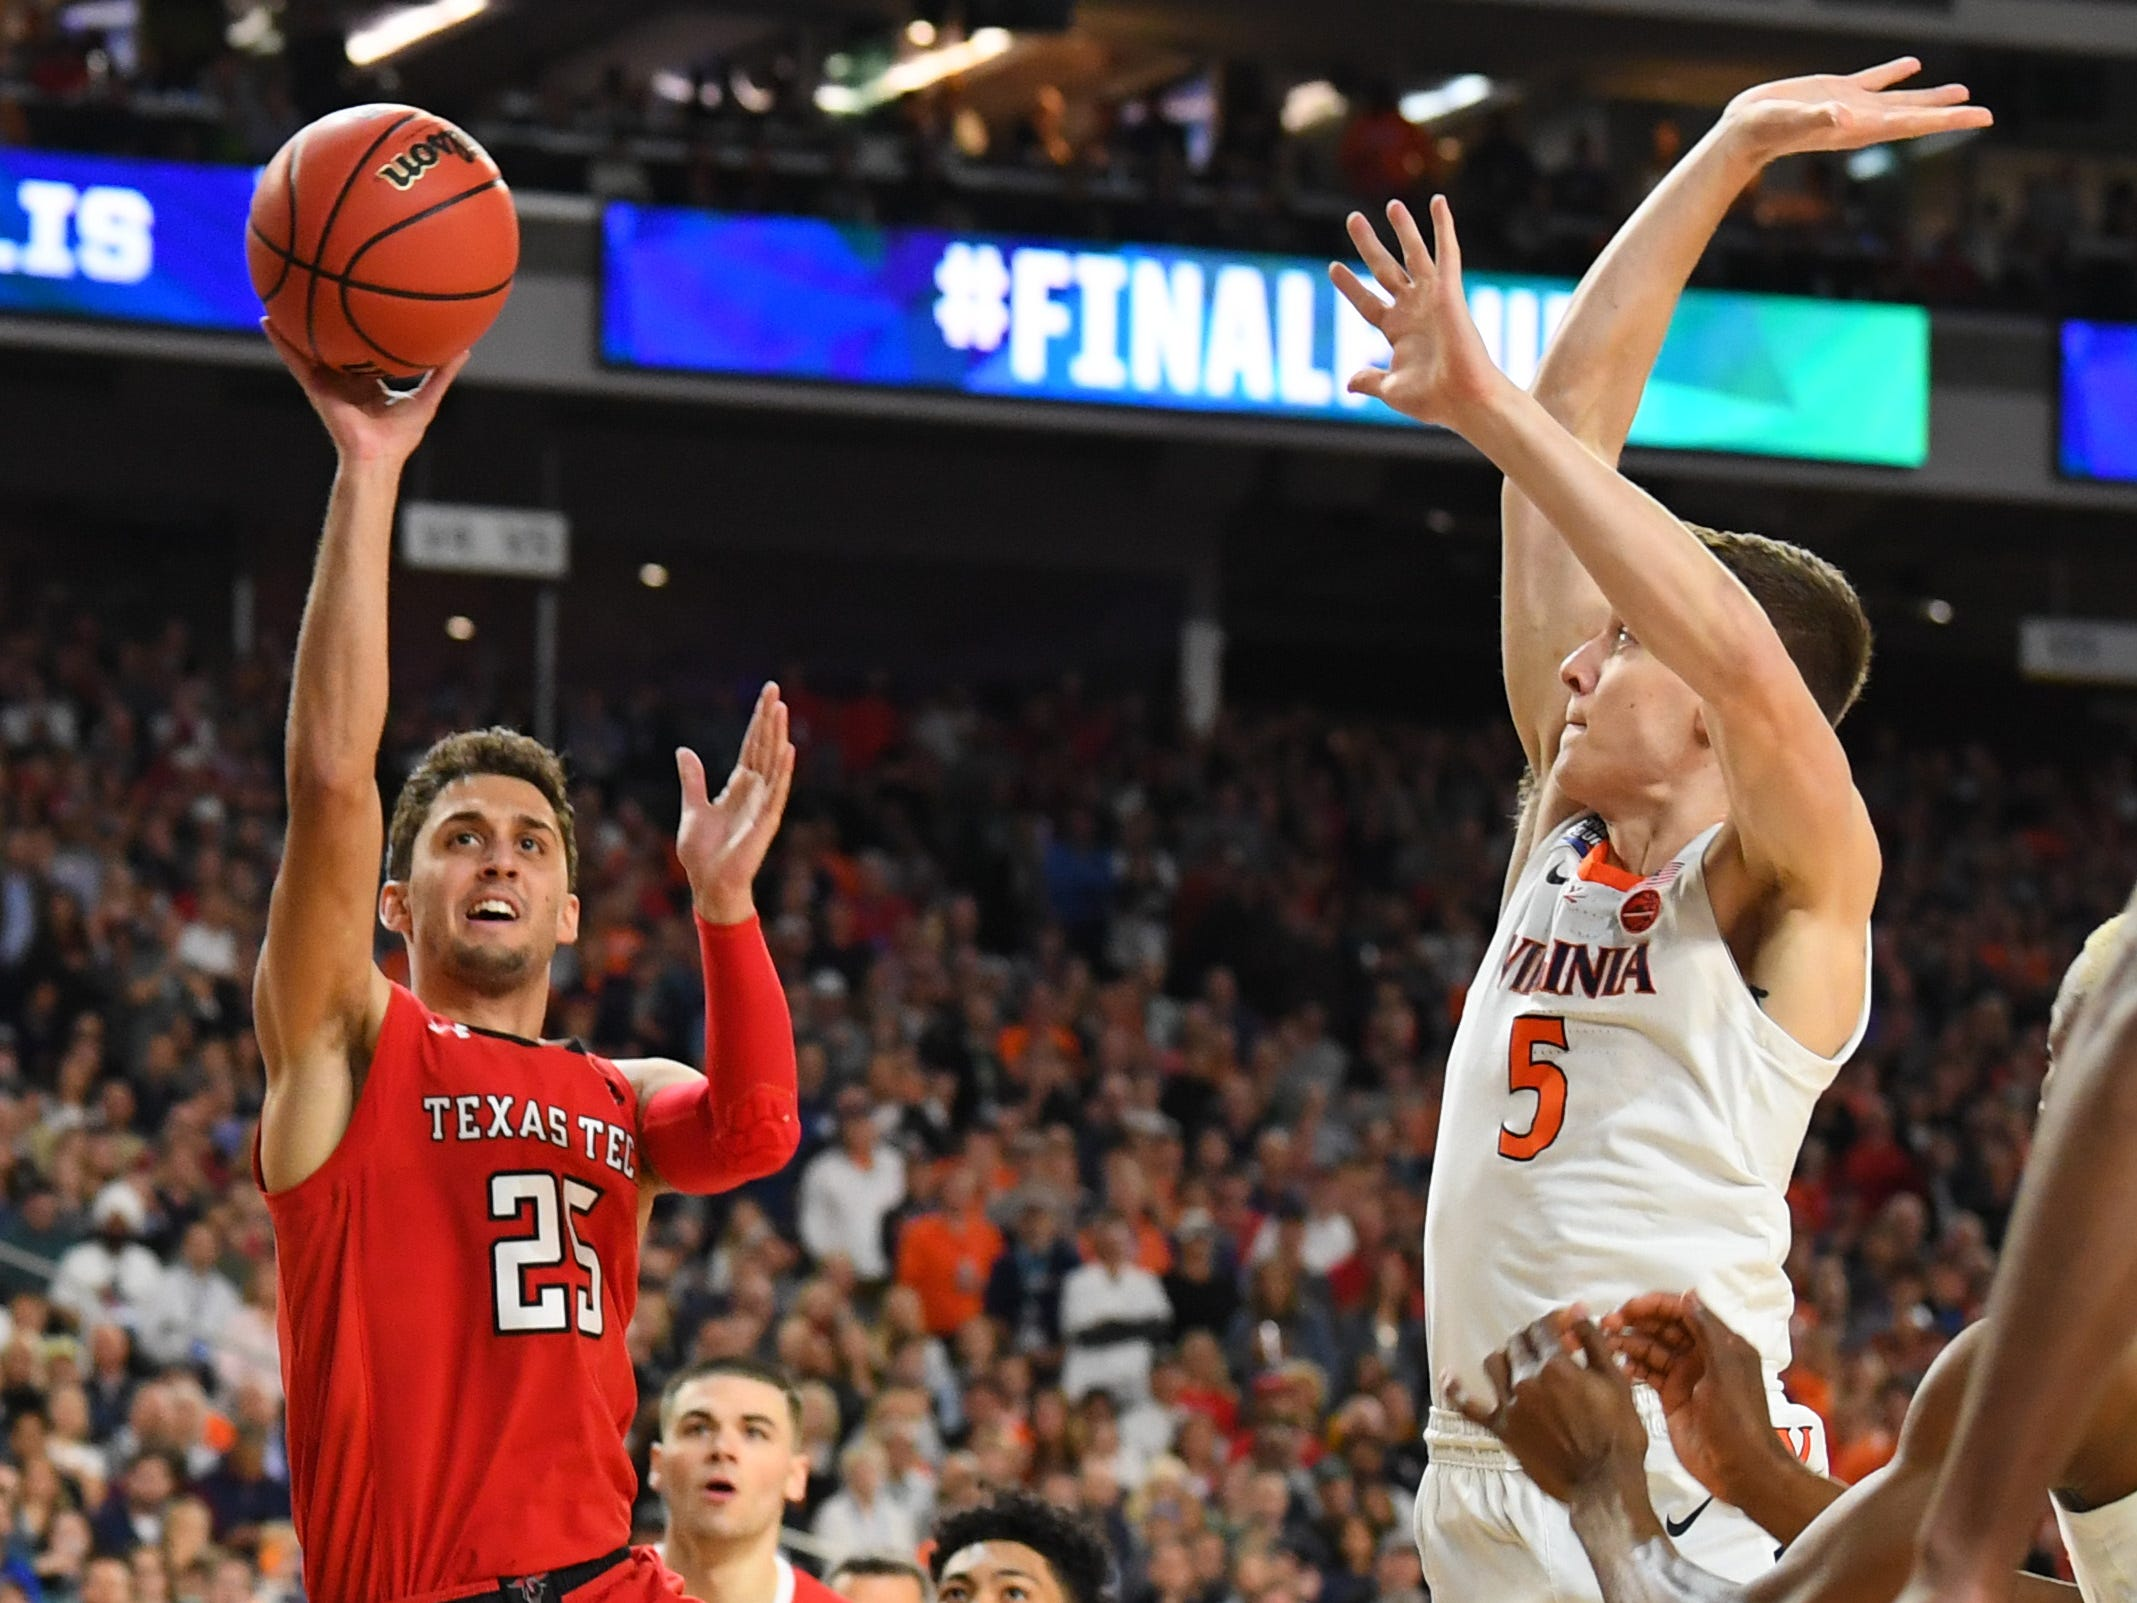 Texas Tech's Davide Moretti (25) shoots the ball defended by Virginia's Kyle Guy in the championship game.